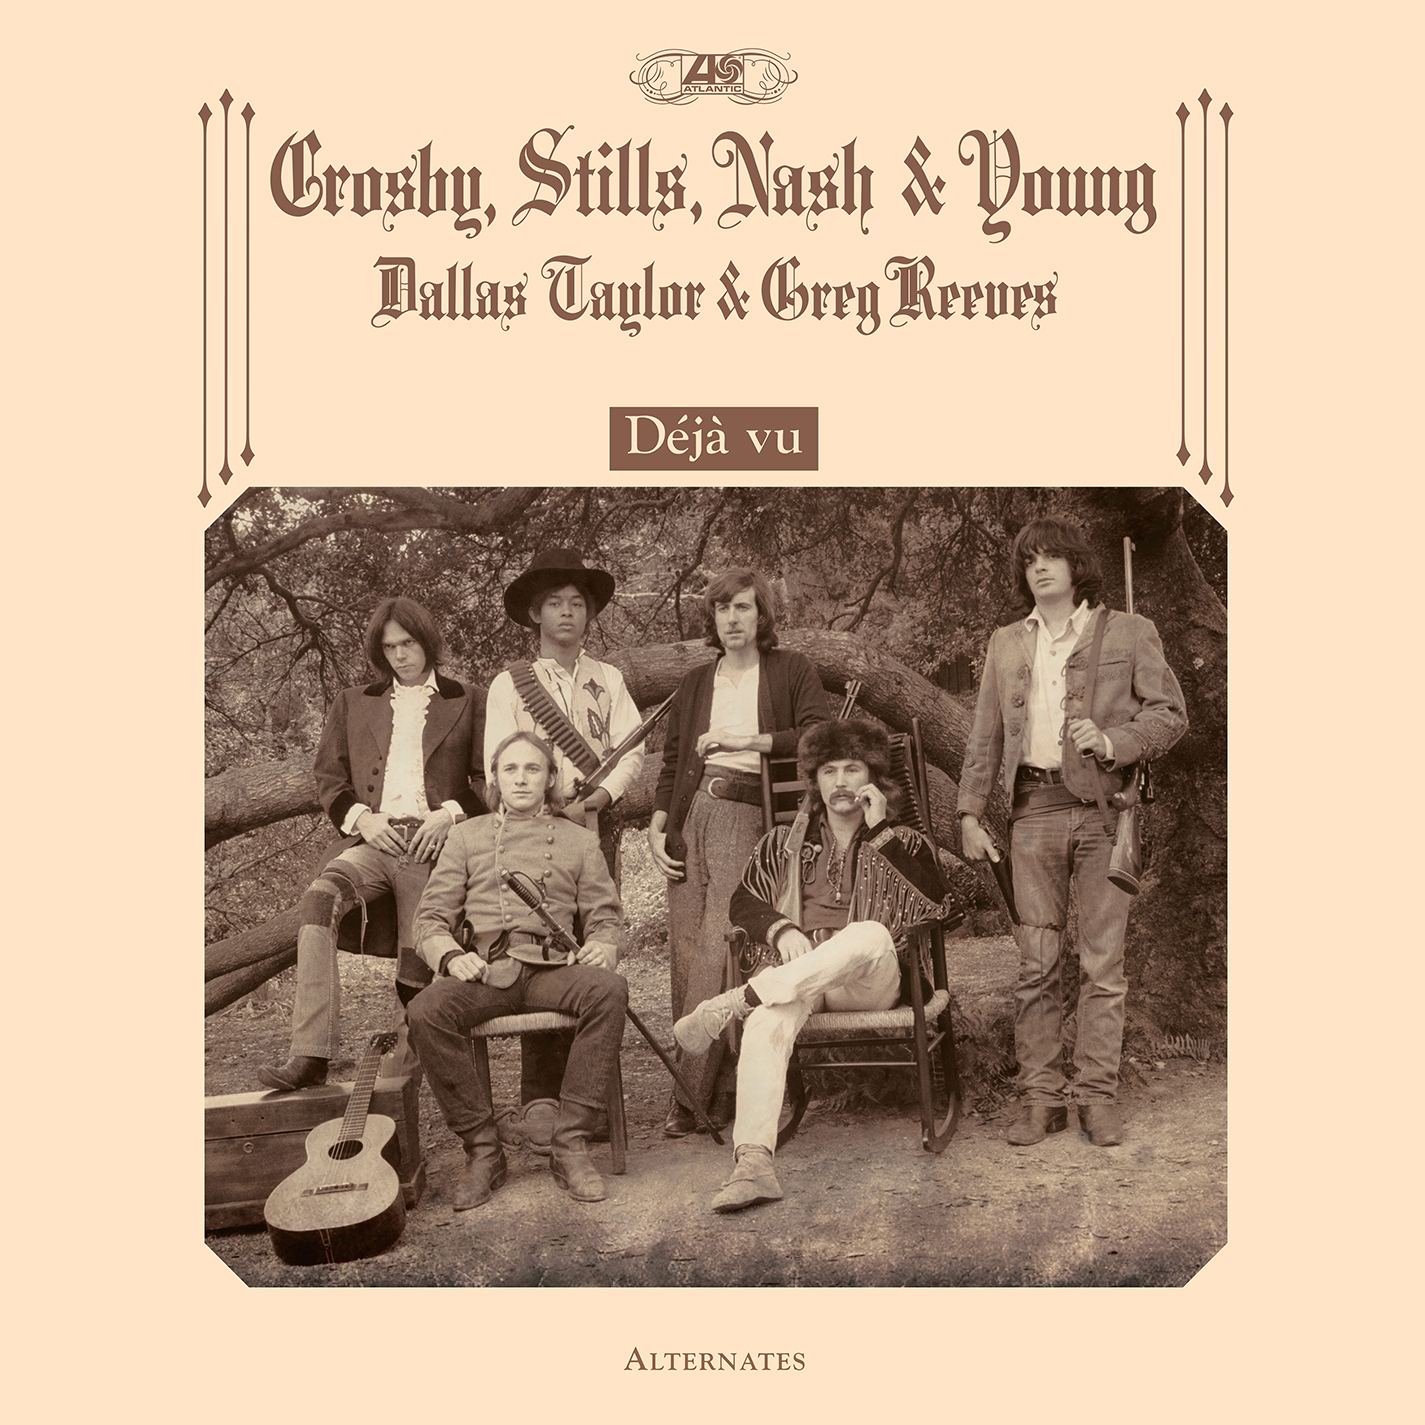 Crosby, Stills, Nash & Young - Déjà vu Alternates [RSD Drops 2021]